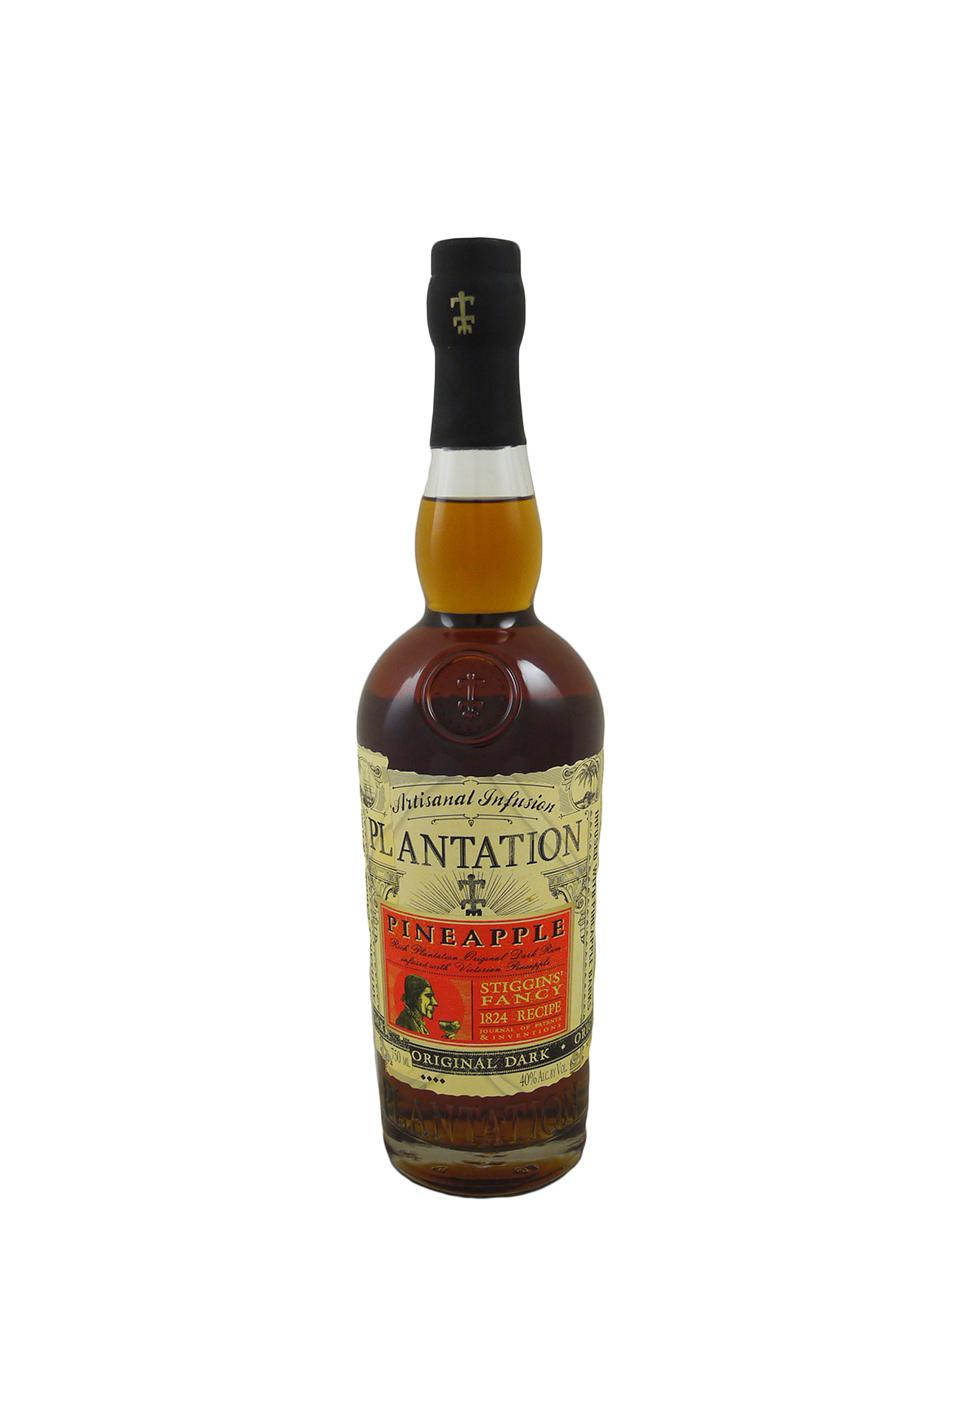 Stiggins' Fancy Plantation Pineapple Rum